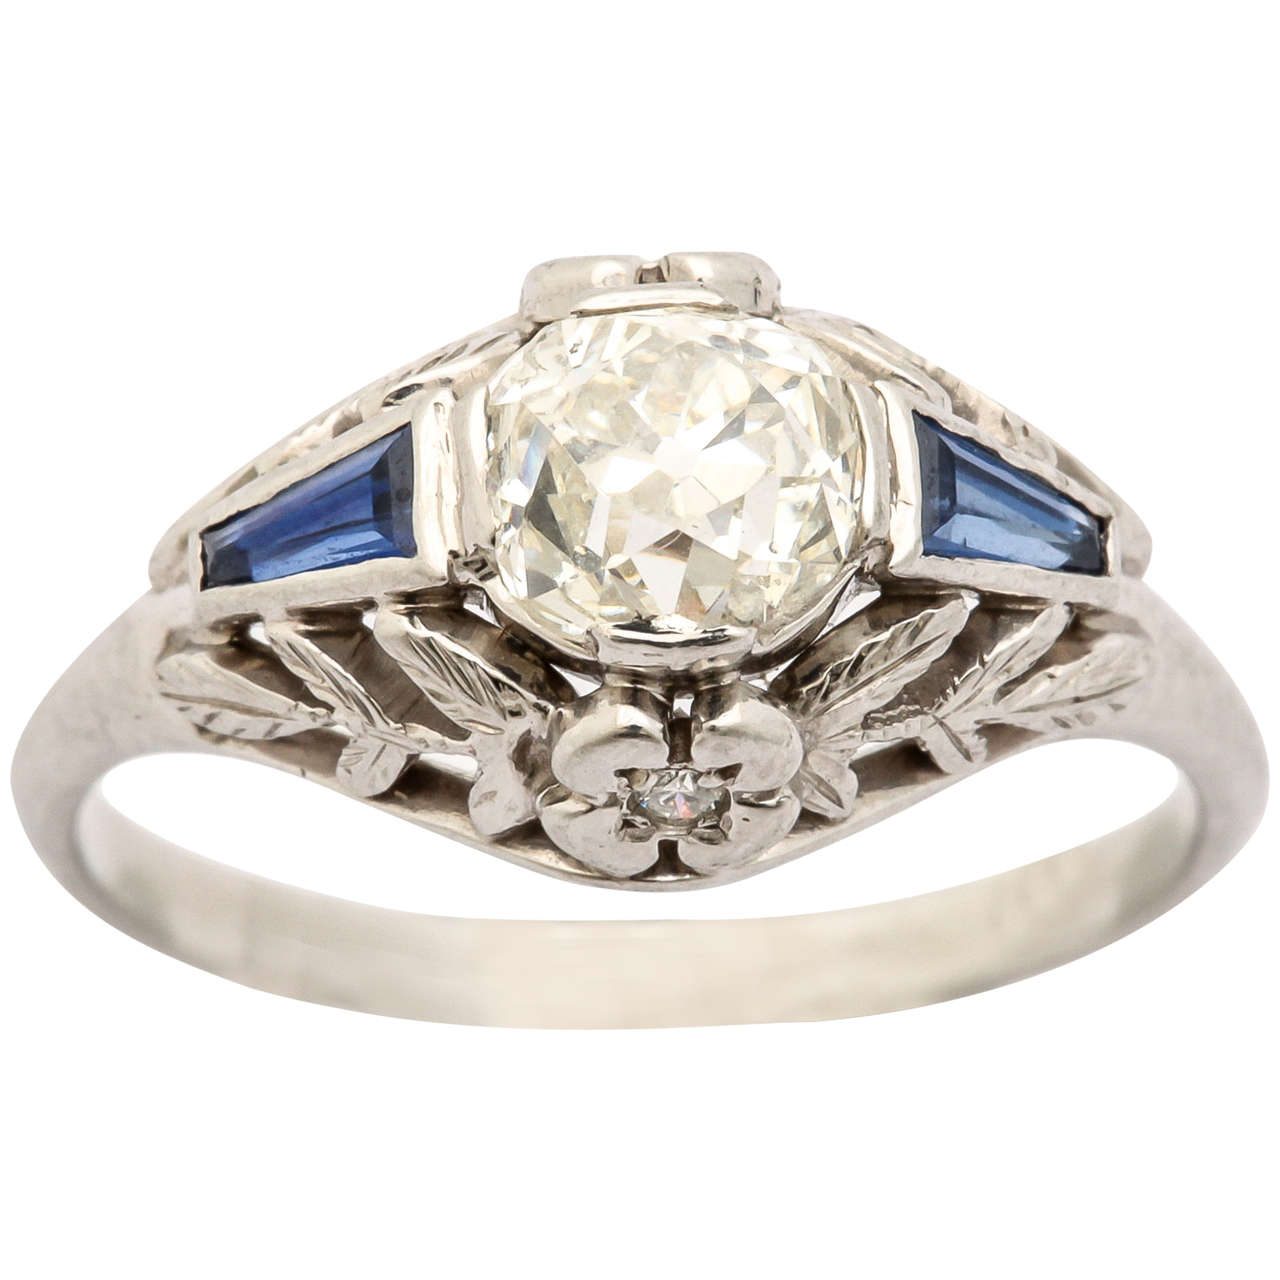 Old Mine Cut Sapphire Diamond Platinum Deco Ring